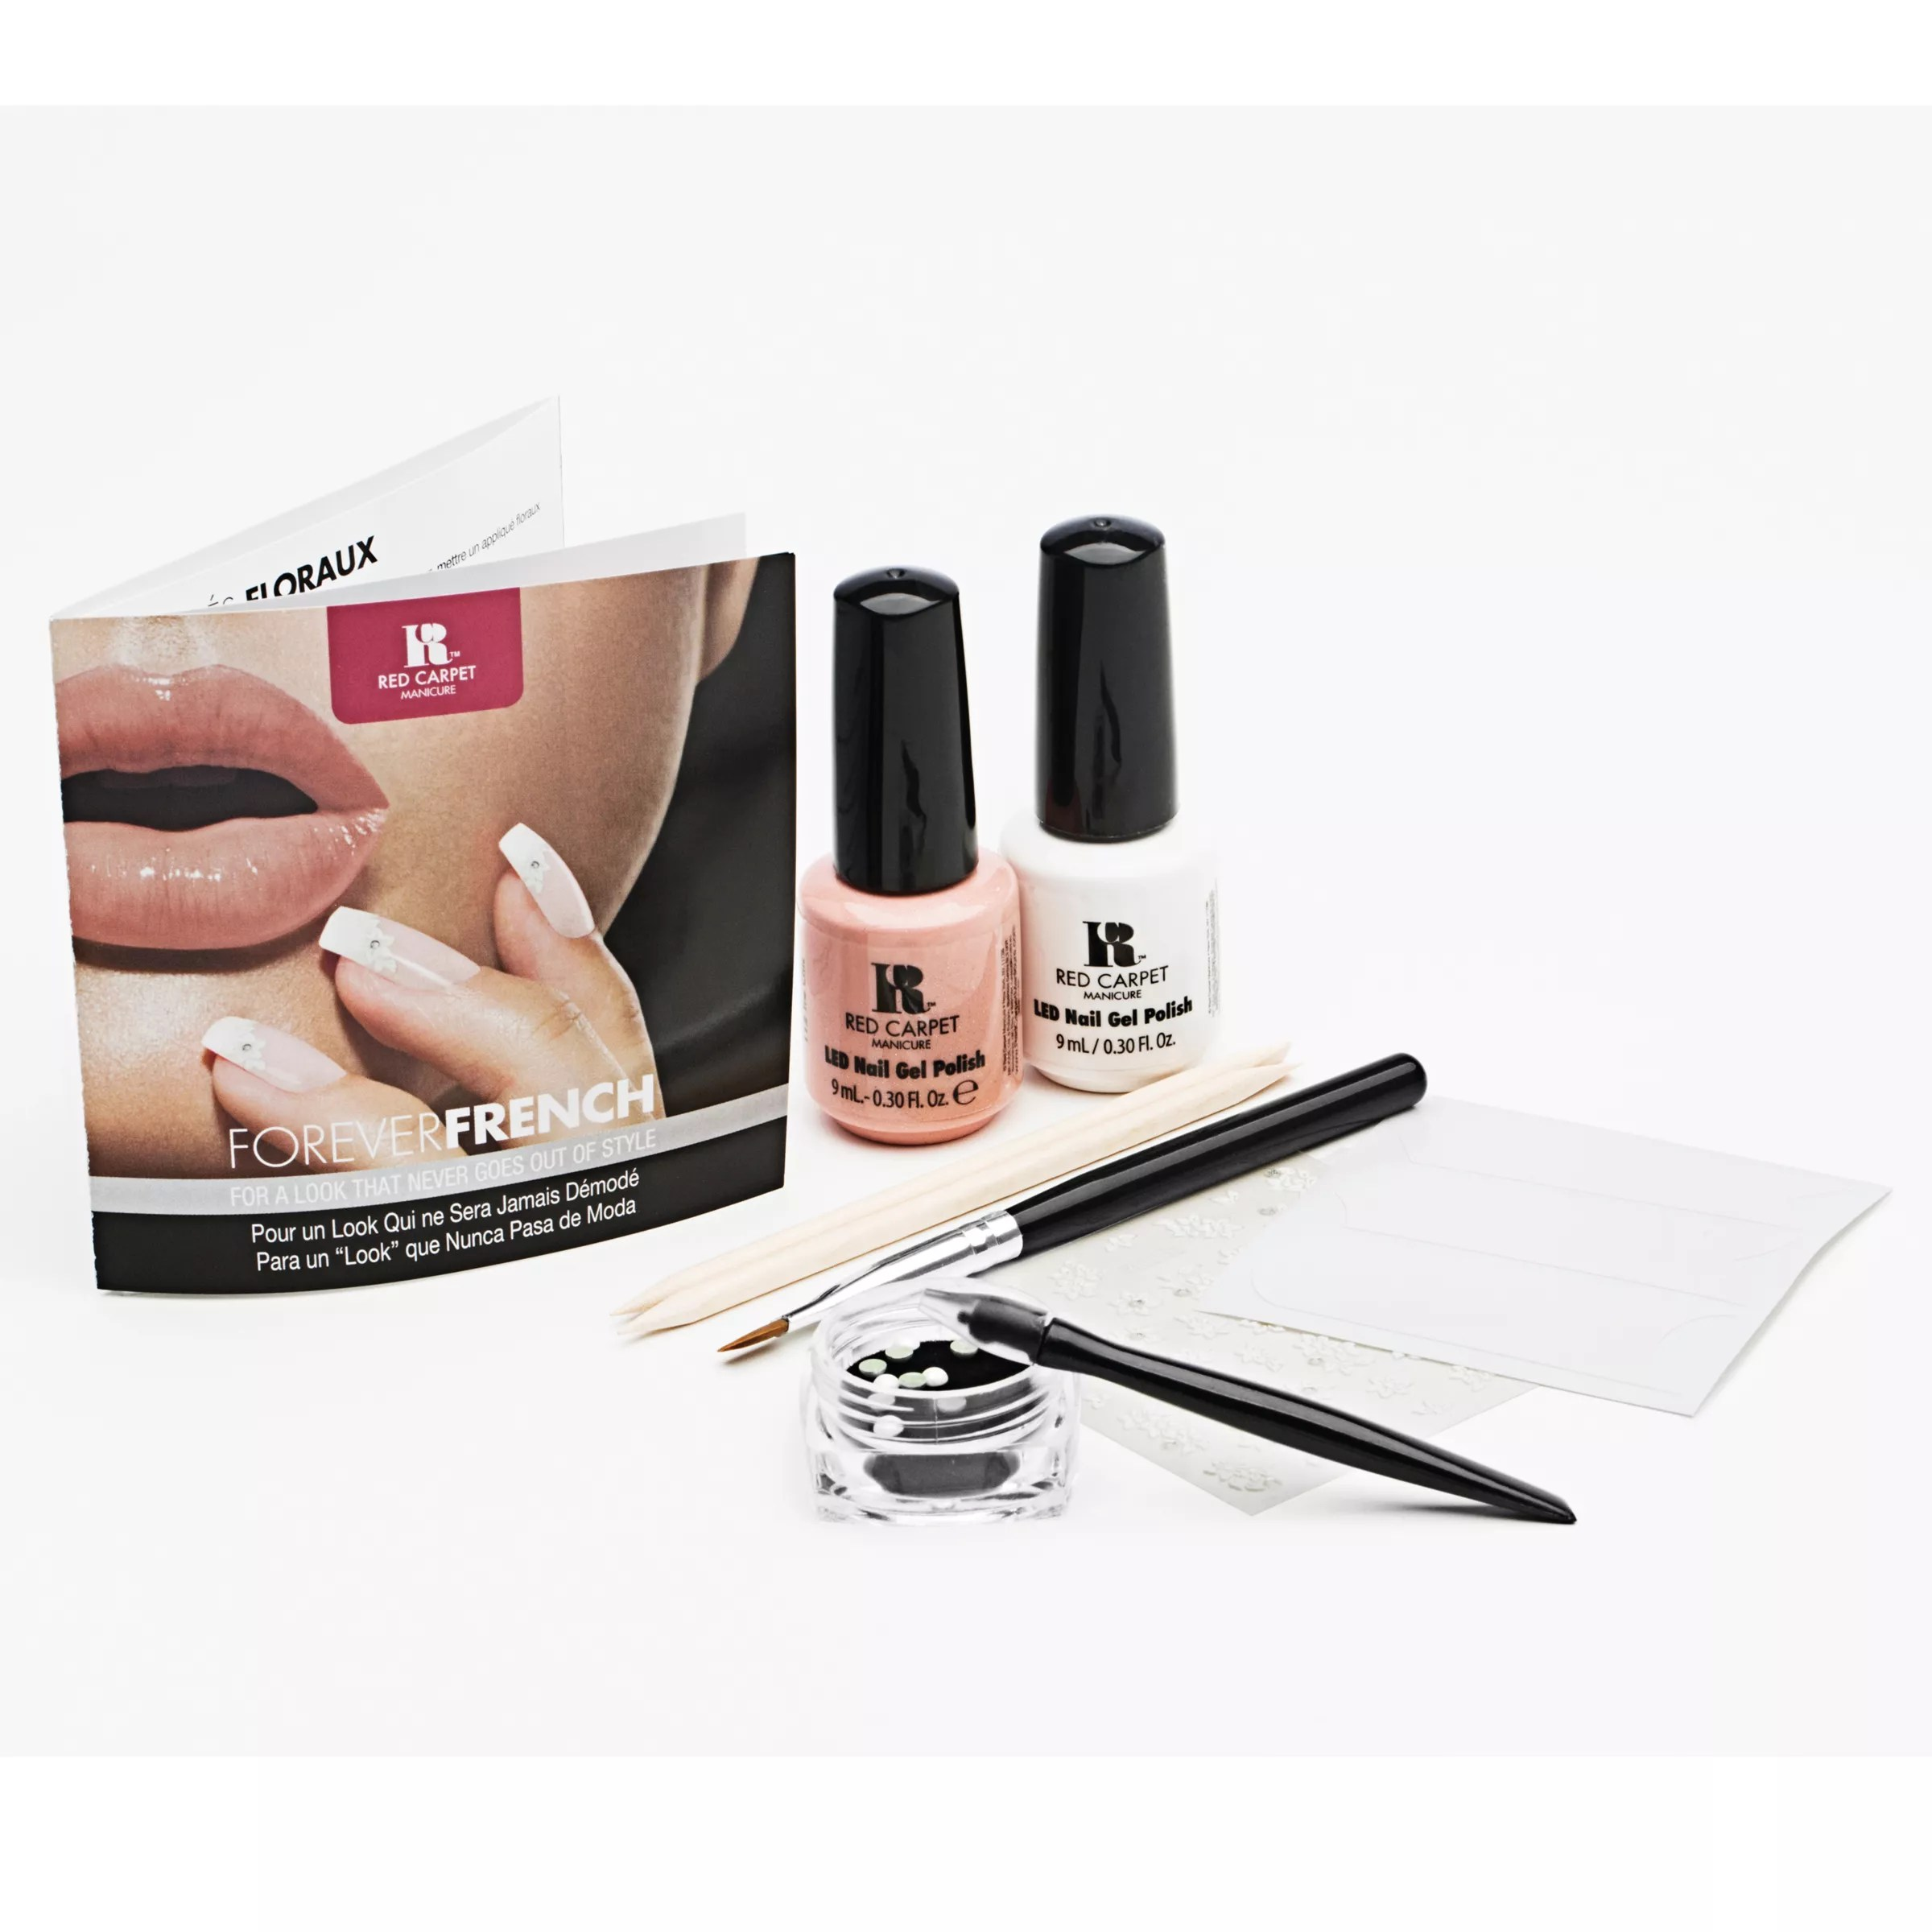 Buy Red Carpet Manicure Forever French Nail Art Kit John